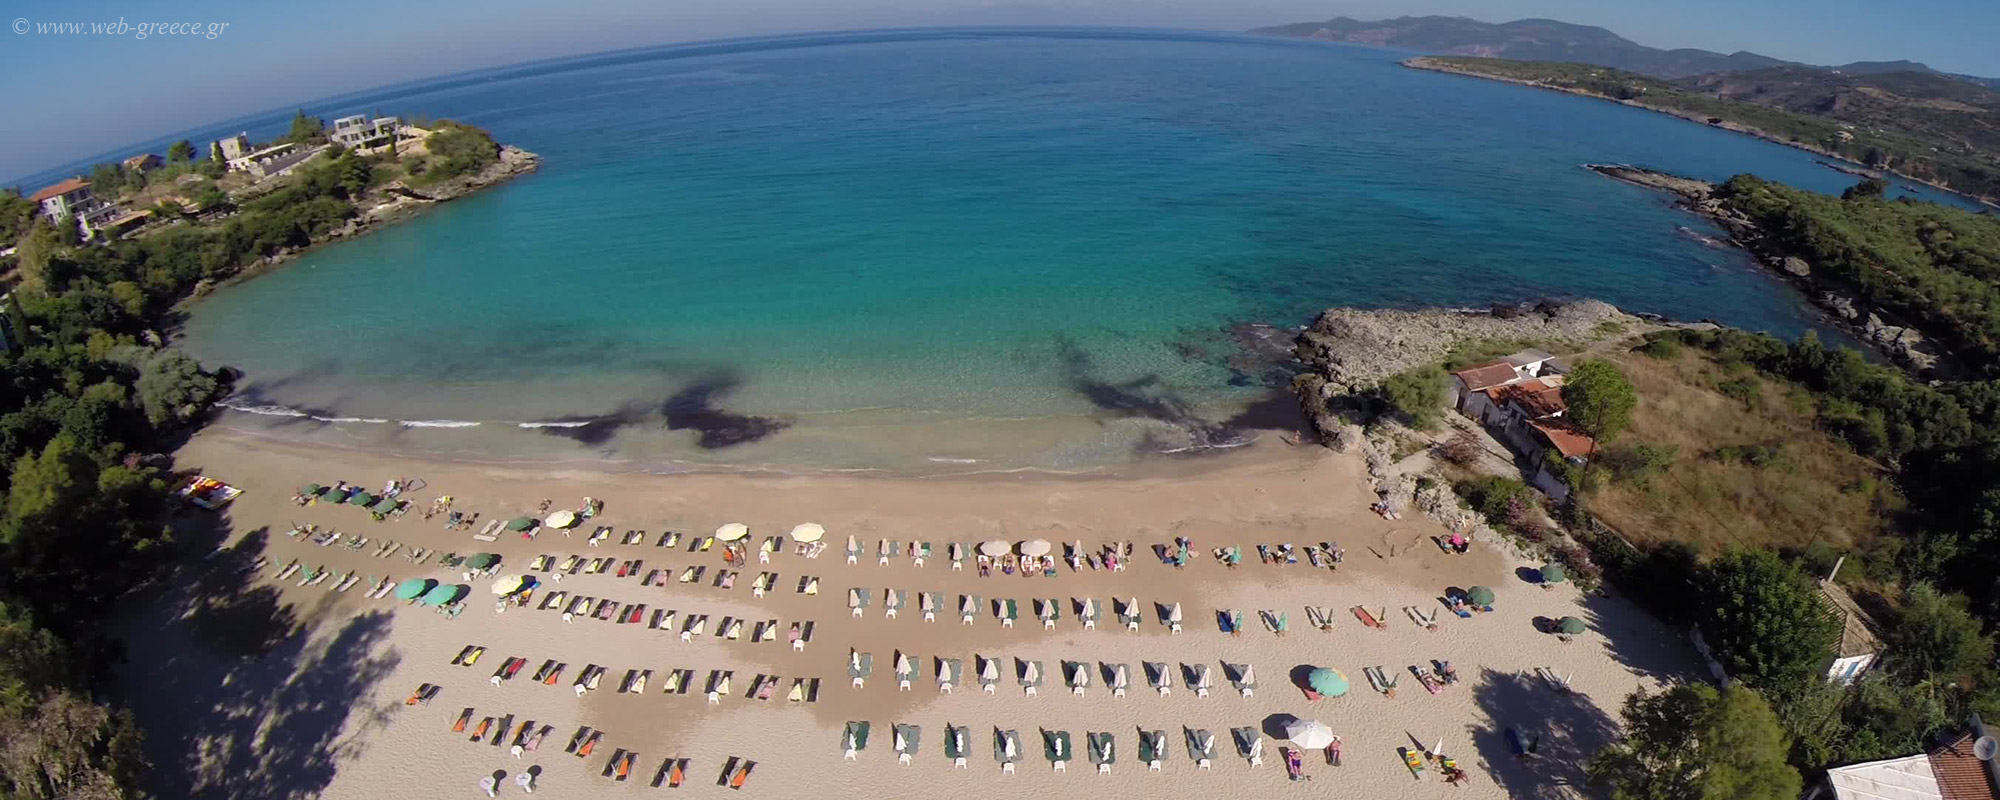 Kalogria Beach - Stoupa